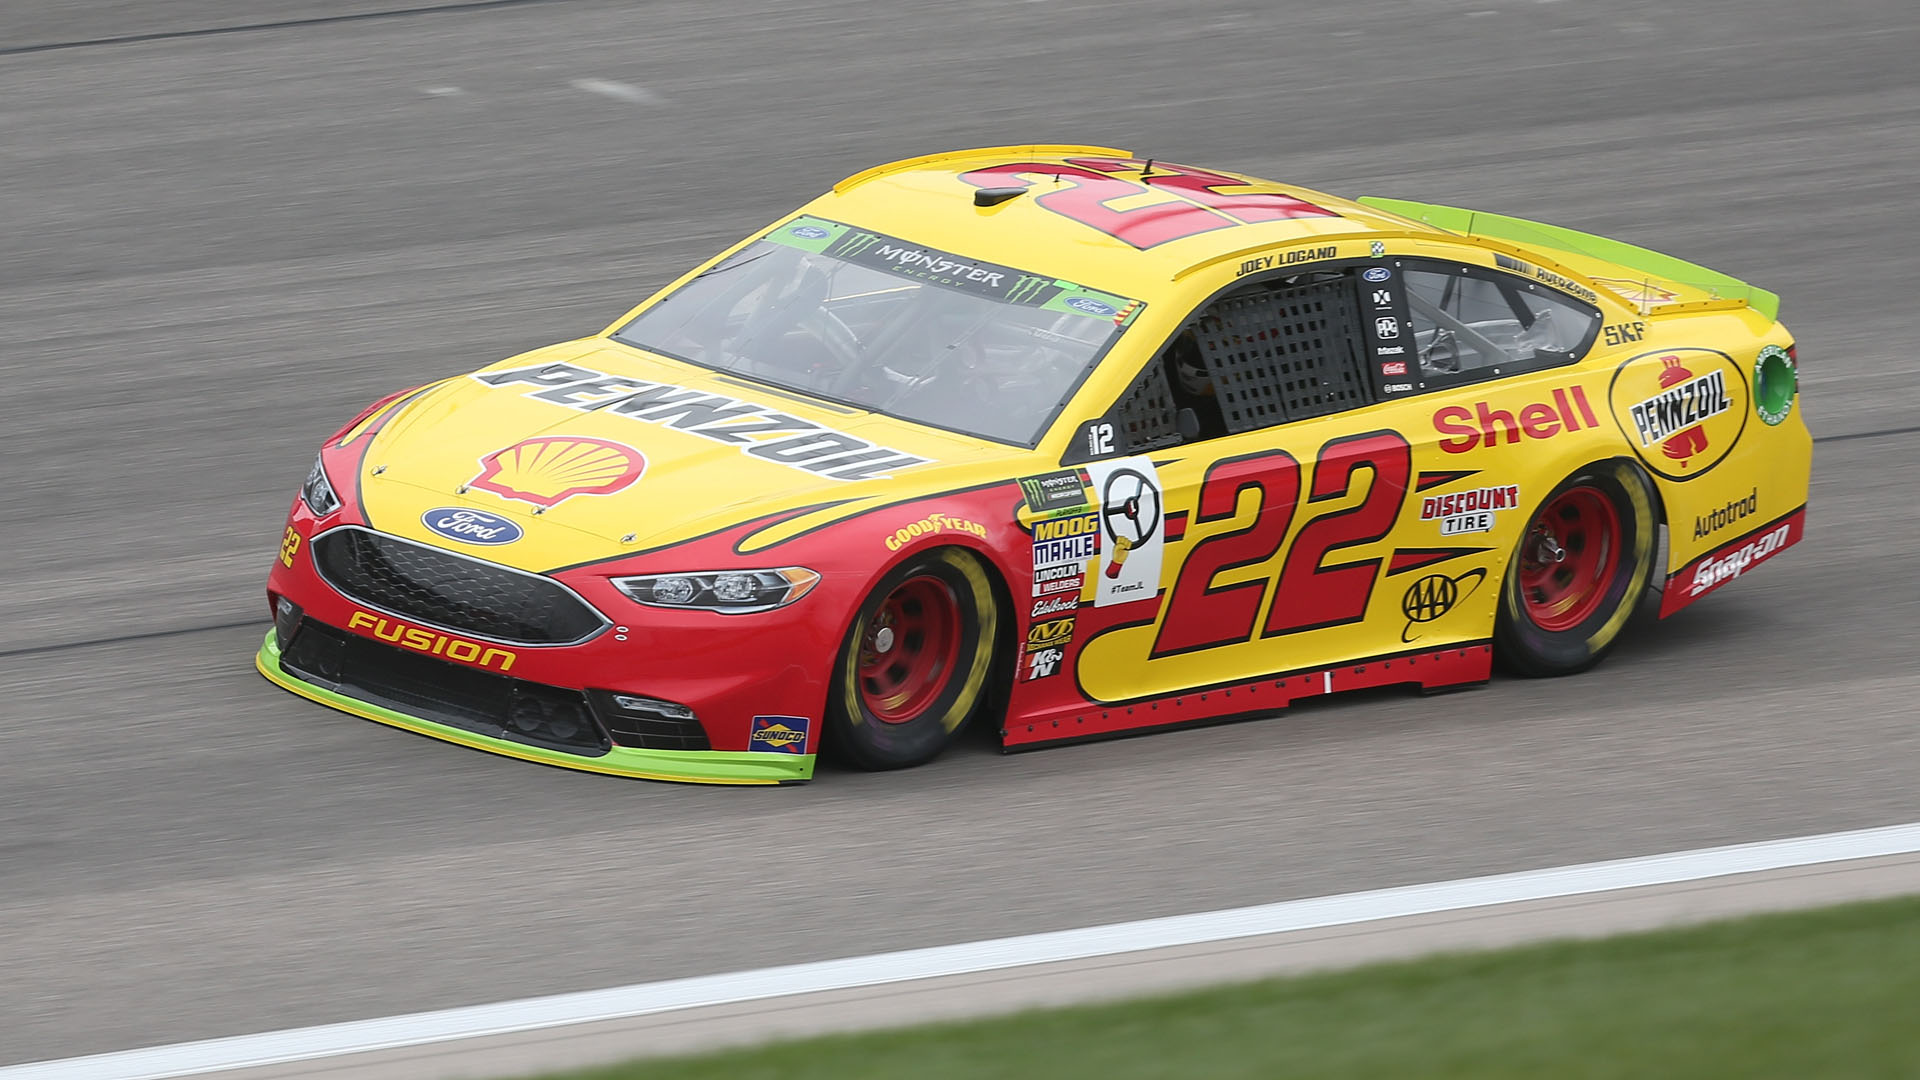 NASCAR at Michigan: Odds, prediction, sleepers, drivers to watch for FireKeepers Casino 400